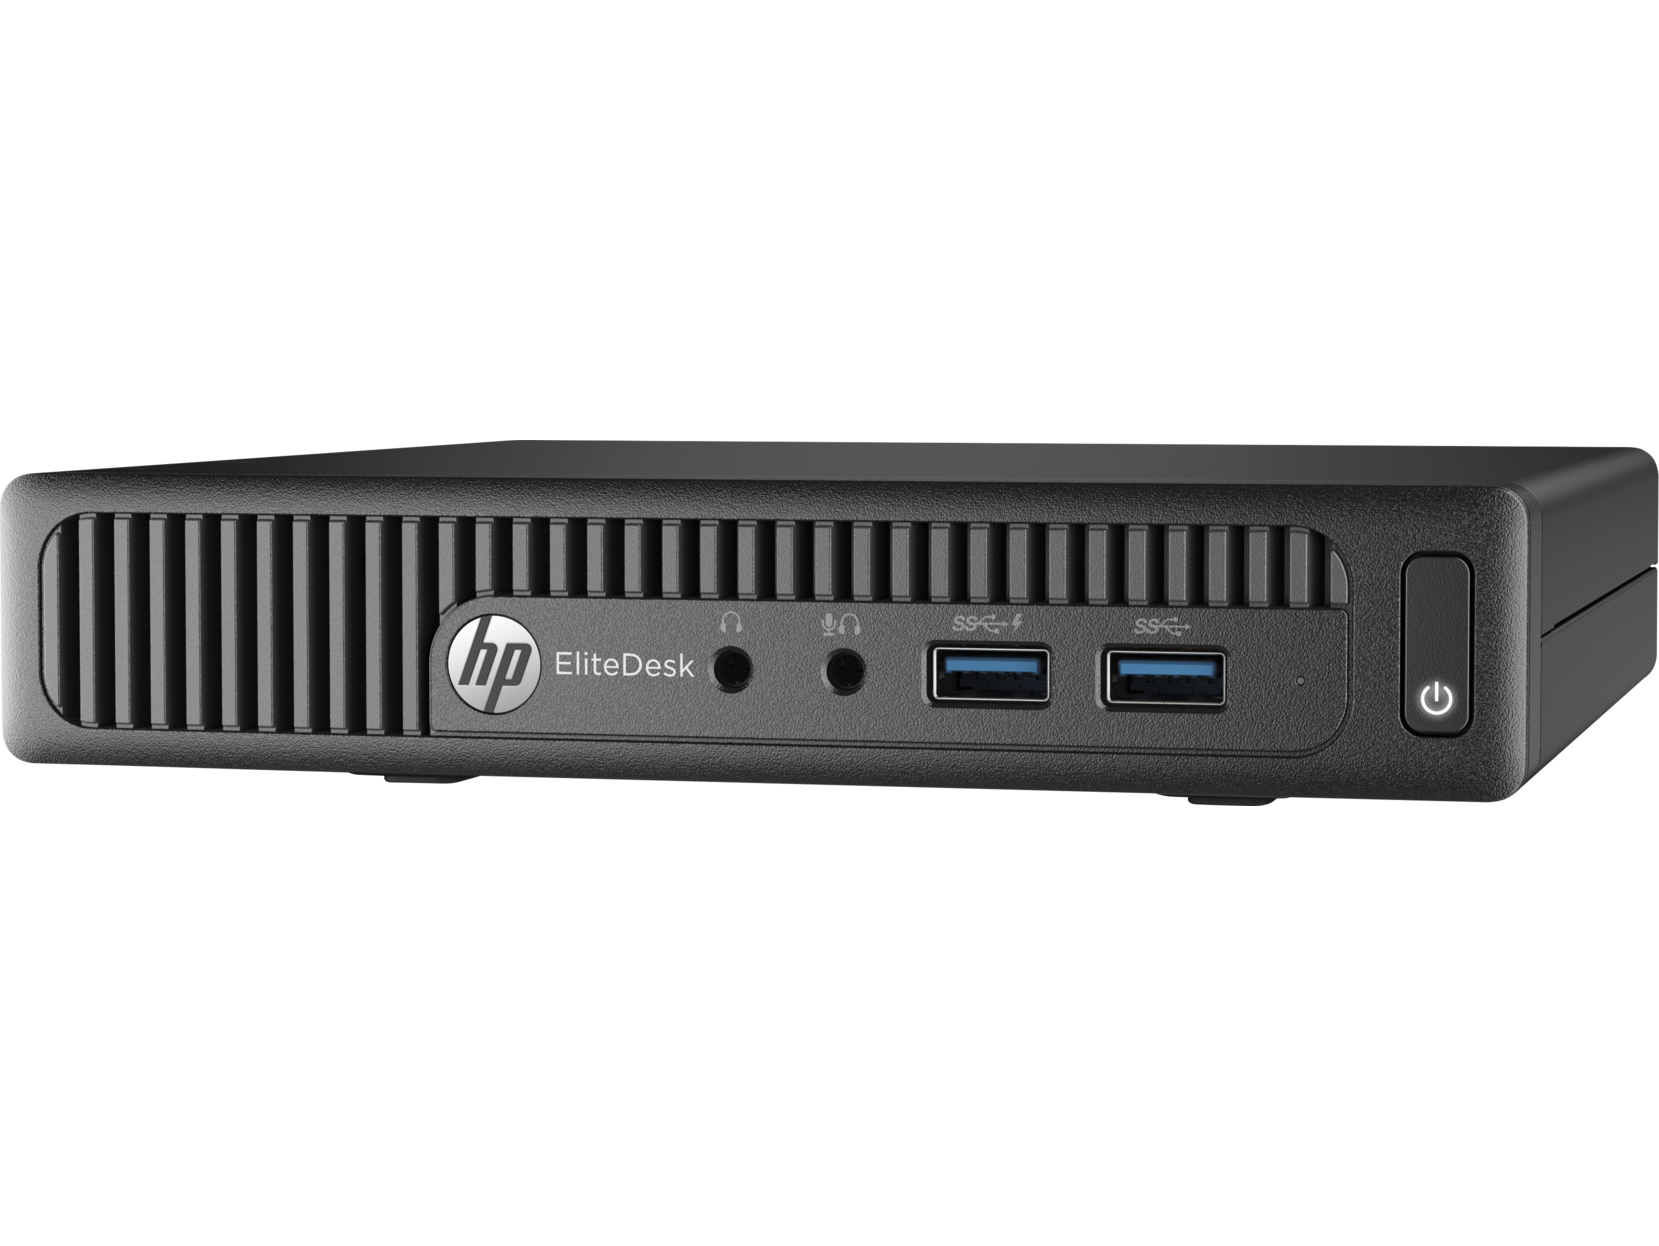 HP 705 G3 3.2GHz A6-9500E PC di dimensione 1L Mini PC